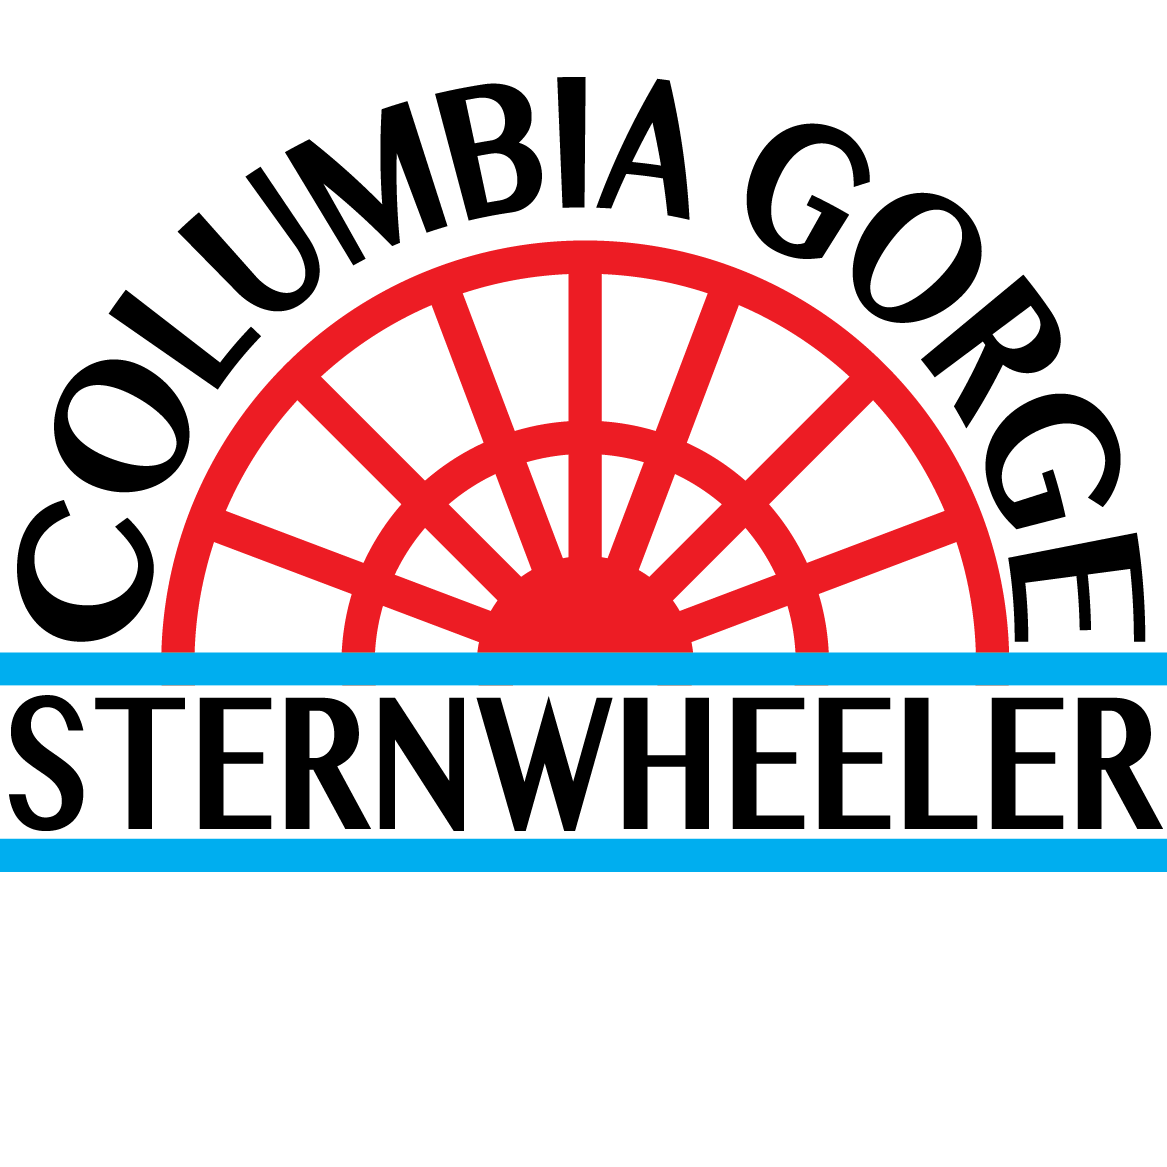 Columbia Gorge Sternwheeler and Locks Grill image 5